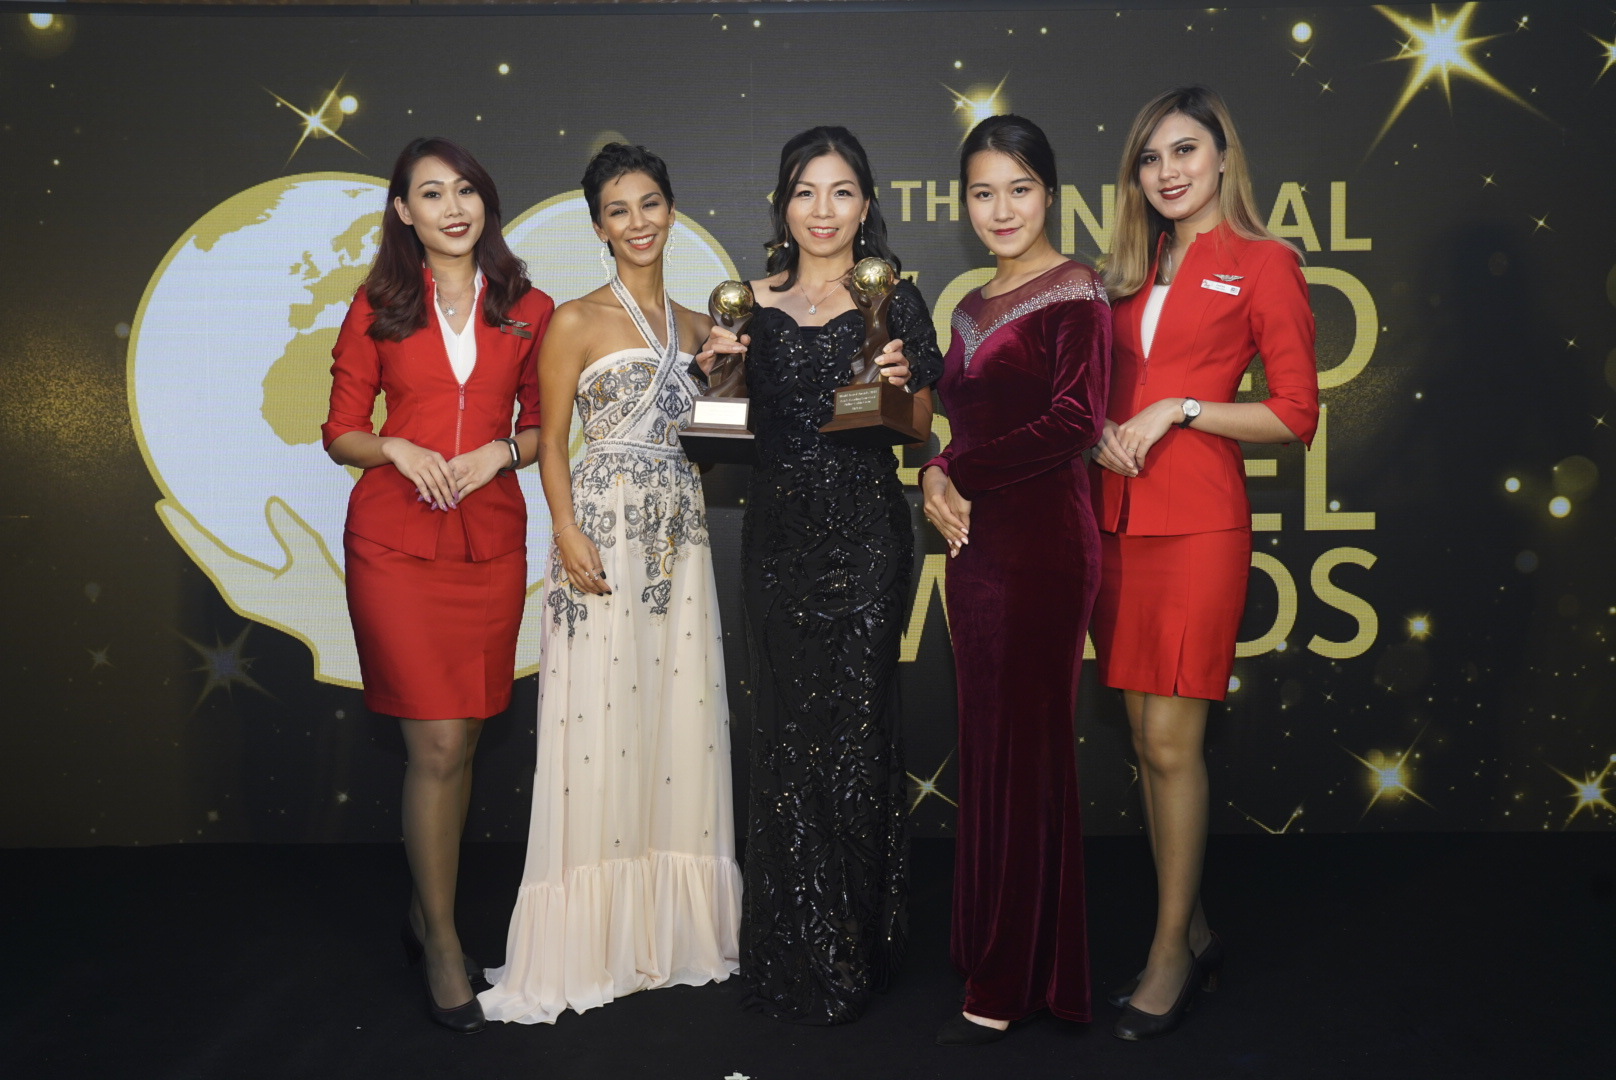 AirAsia Hong Kong and Macao CEO Celia Lao with the trophies for Asia's Leading Low-Cost Airline and Asia's Leading Low-Cost Airline Cabin Crew at the 2018 World Travel Awards Asia and Australia.